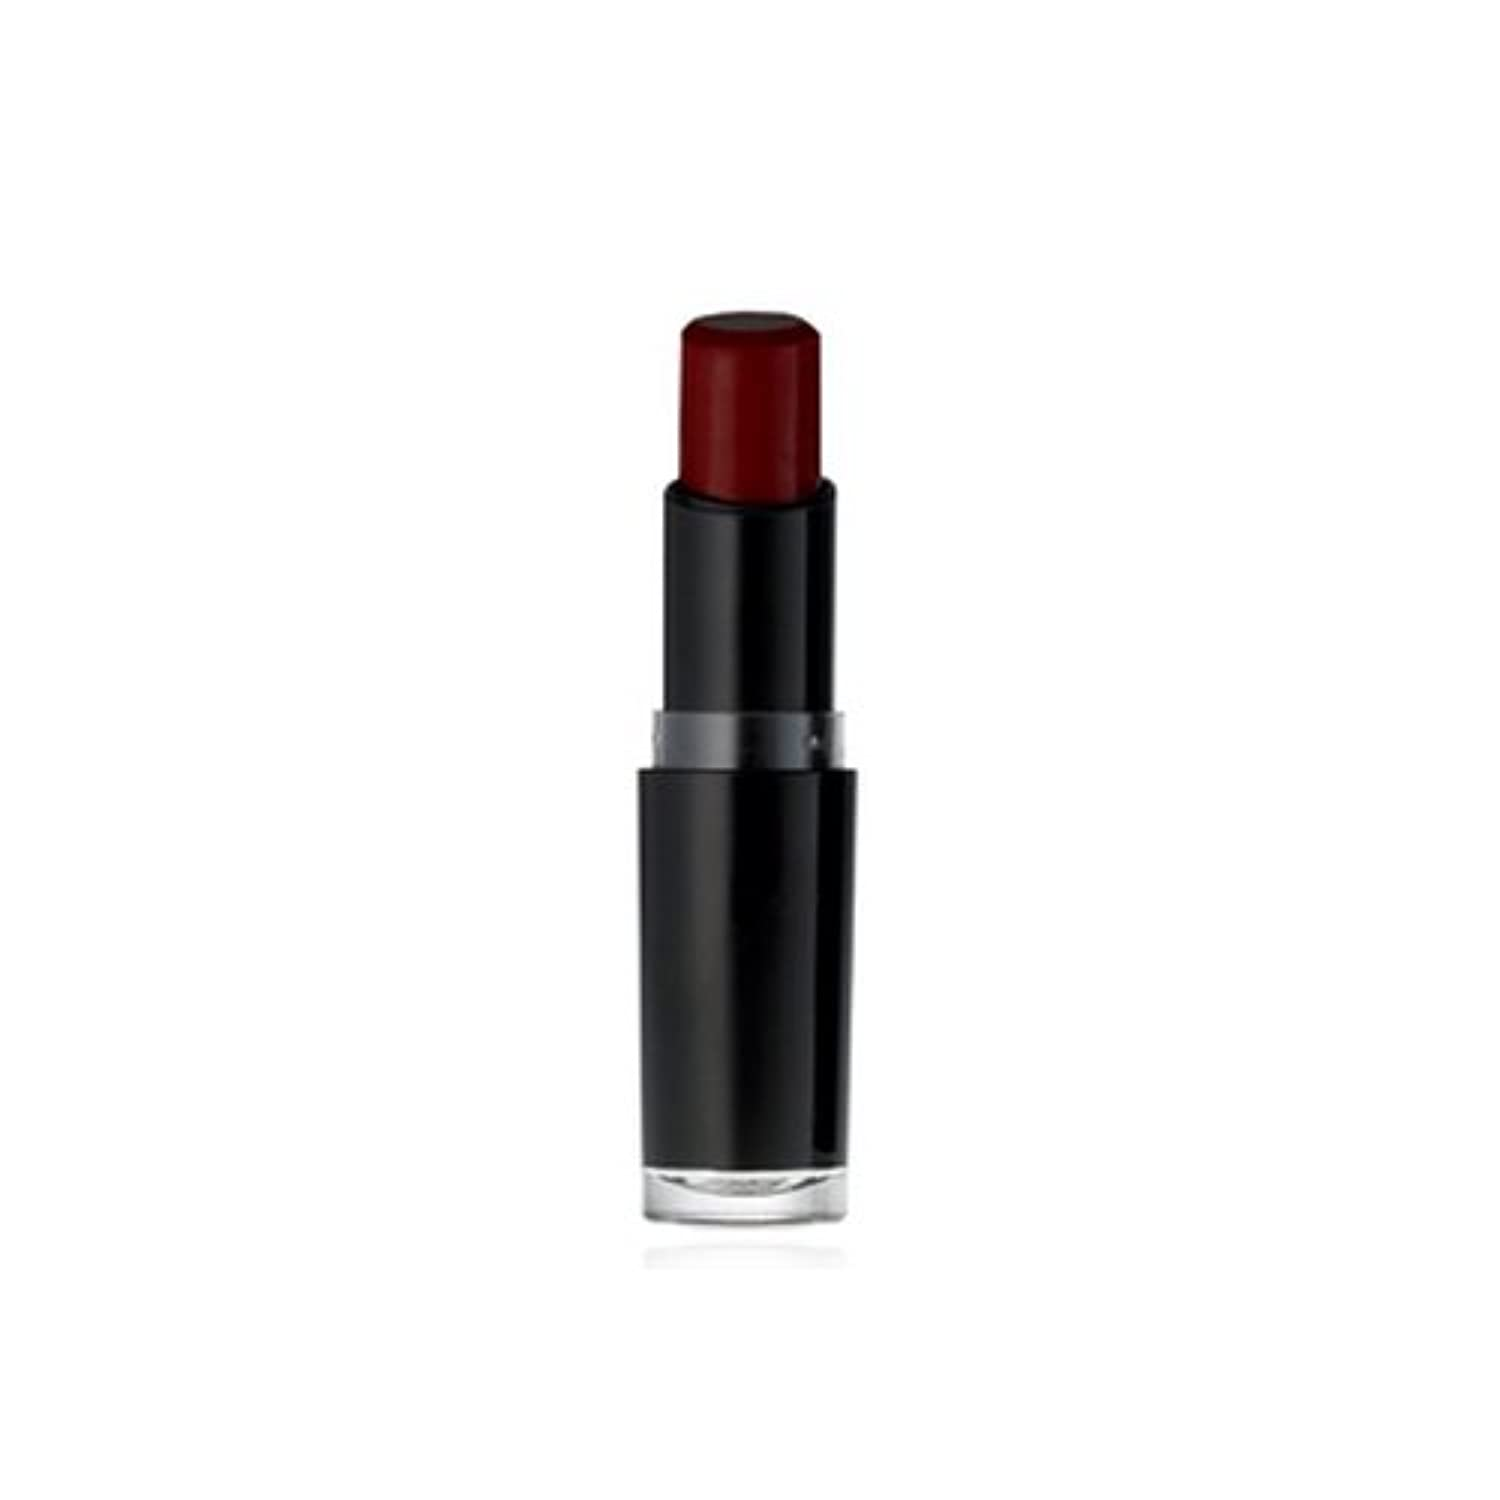 WET N WILD Mega Last Matte Lip Cover - Cherry Bomb (並行輸入品)